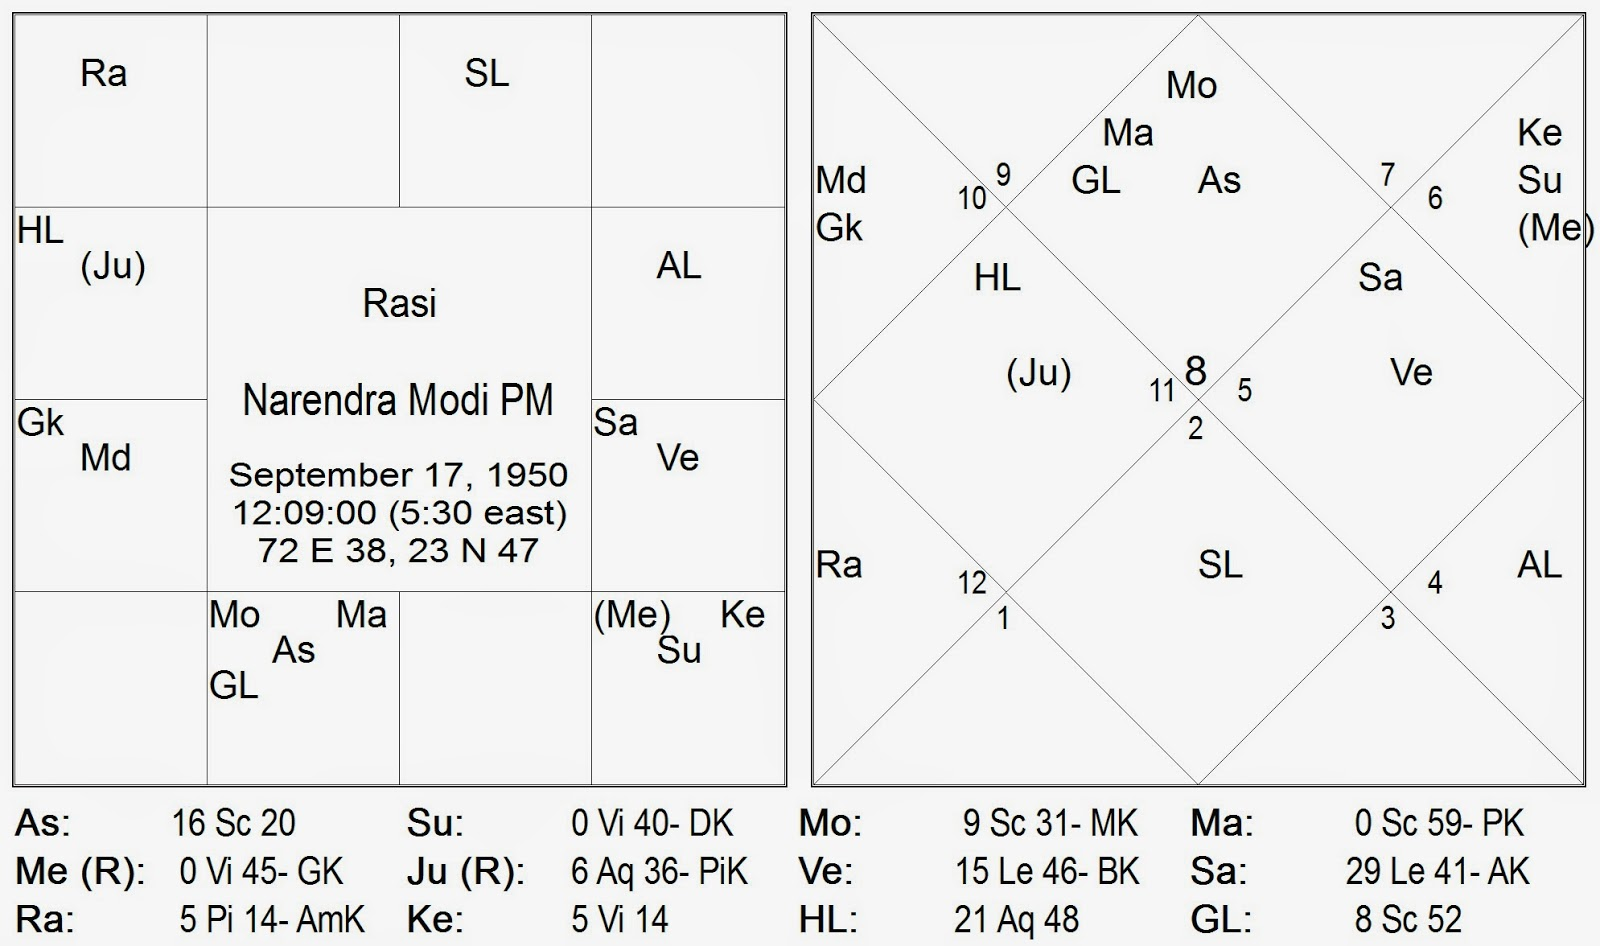 Vedic astrology consultancy research narendra modi prime lagna ascendant and lagna lord the lagna ascendant is vcika vrishchikascorpio which is self evident from his personality nvjuhfo Choice Image